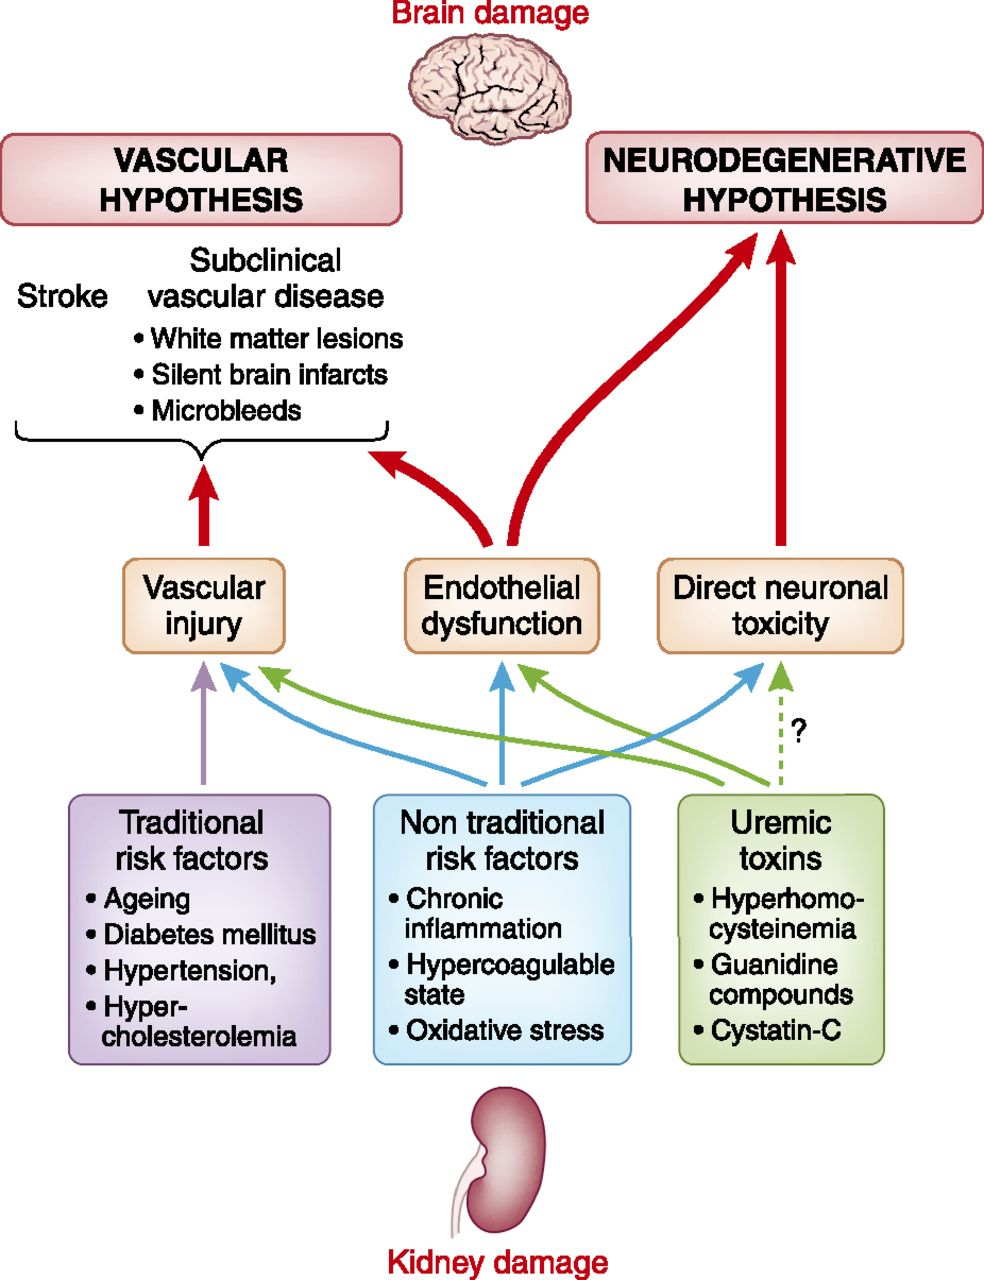 Cognitive Disorders and Dementia in CKD: The Neglected